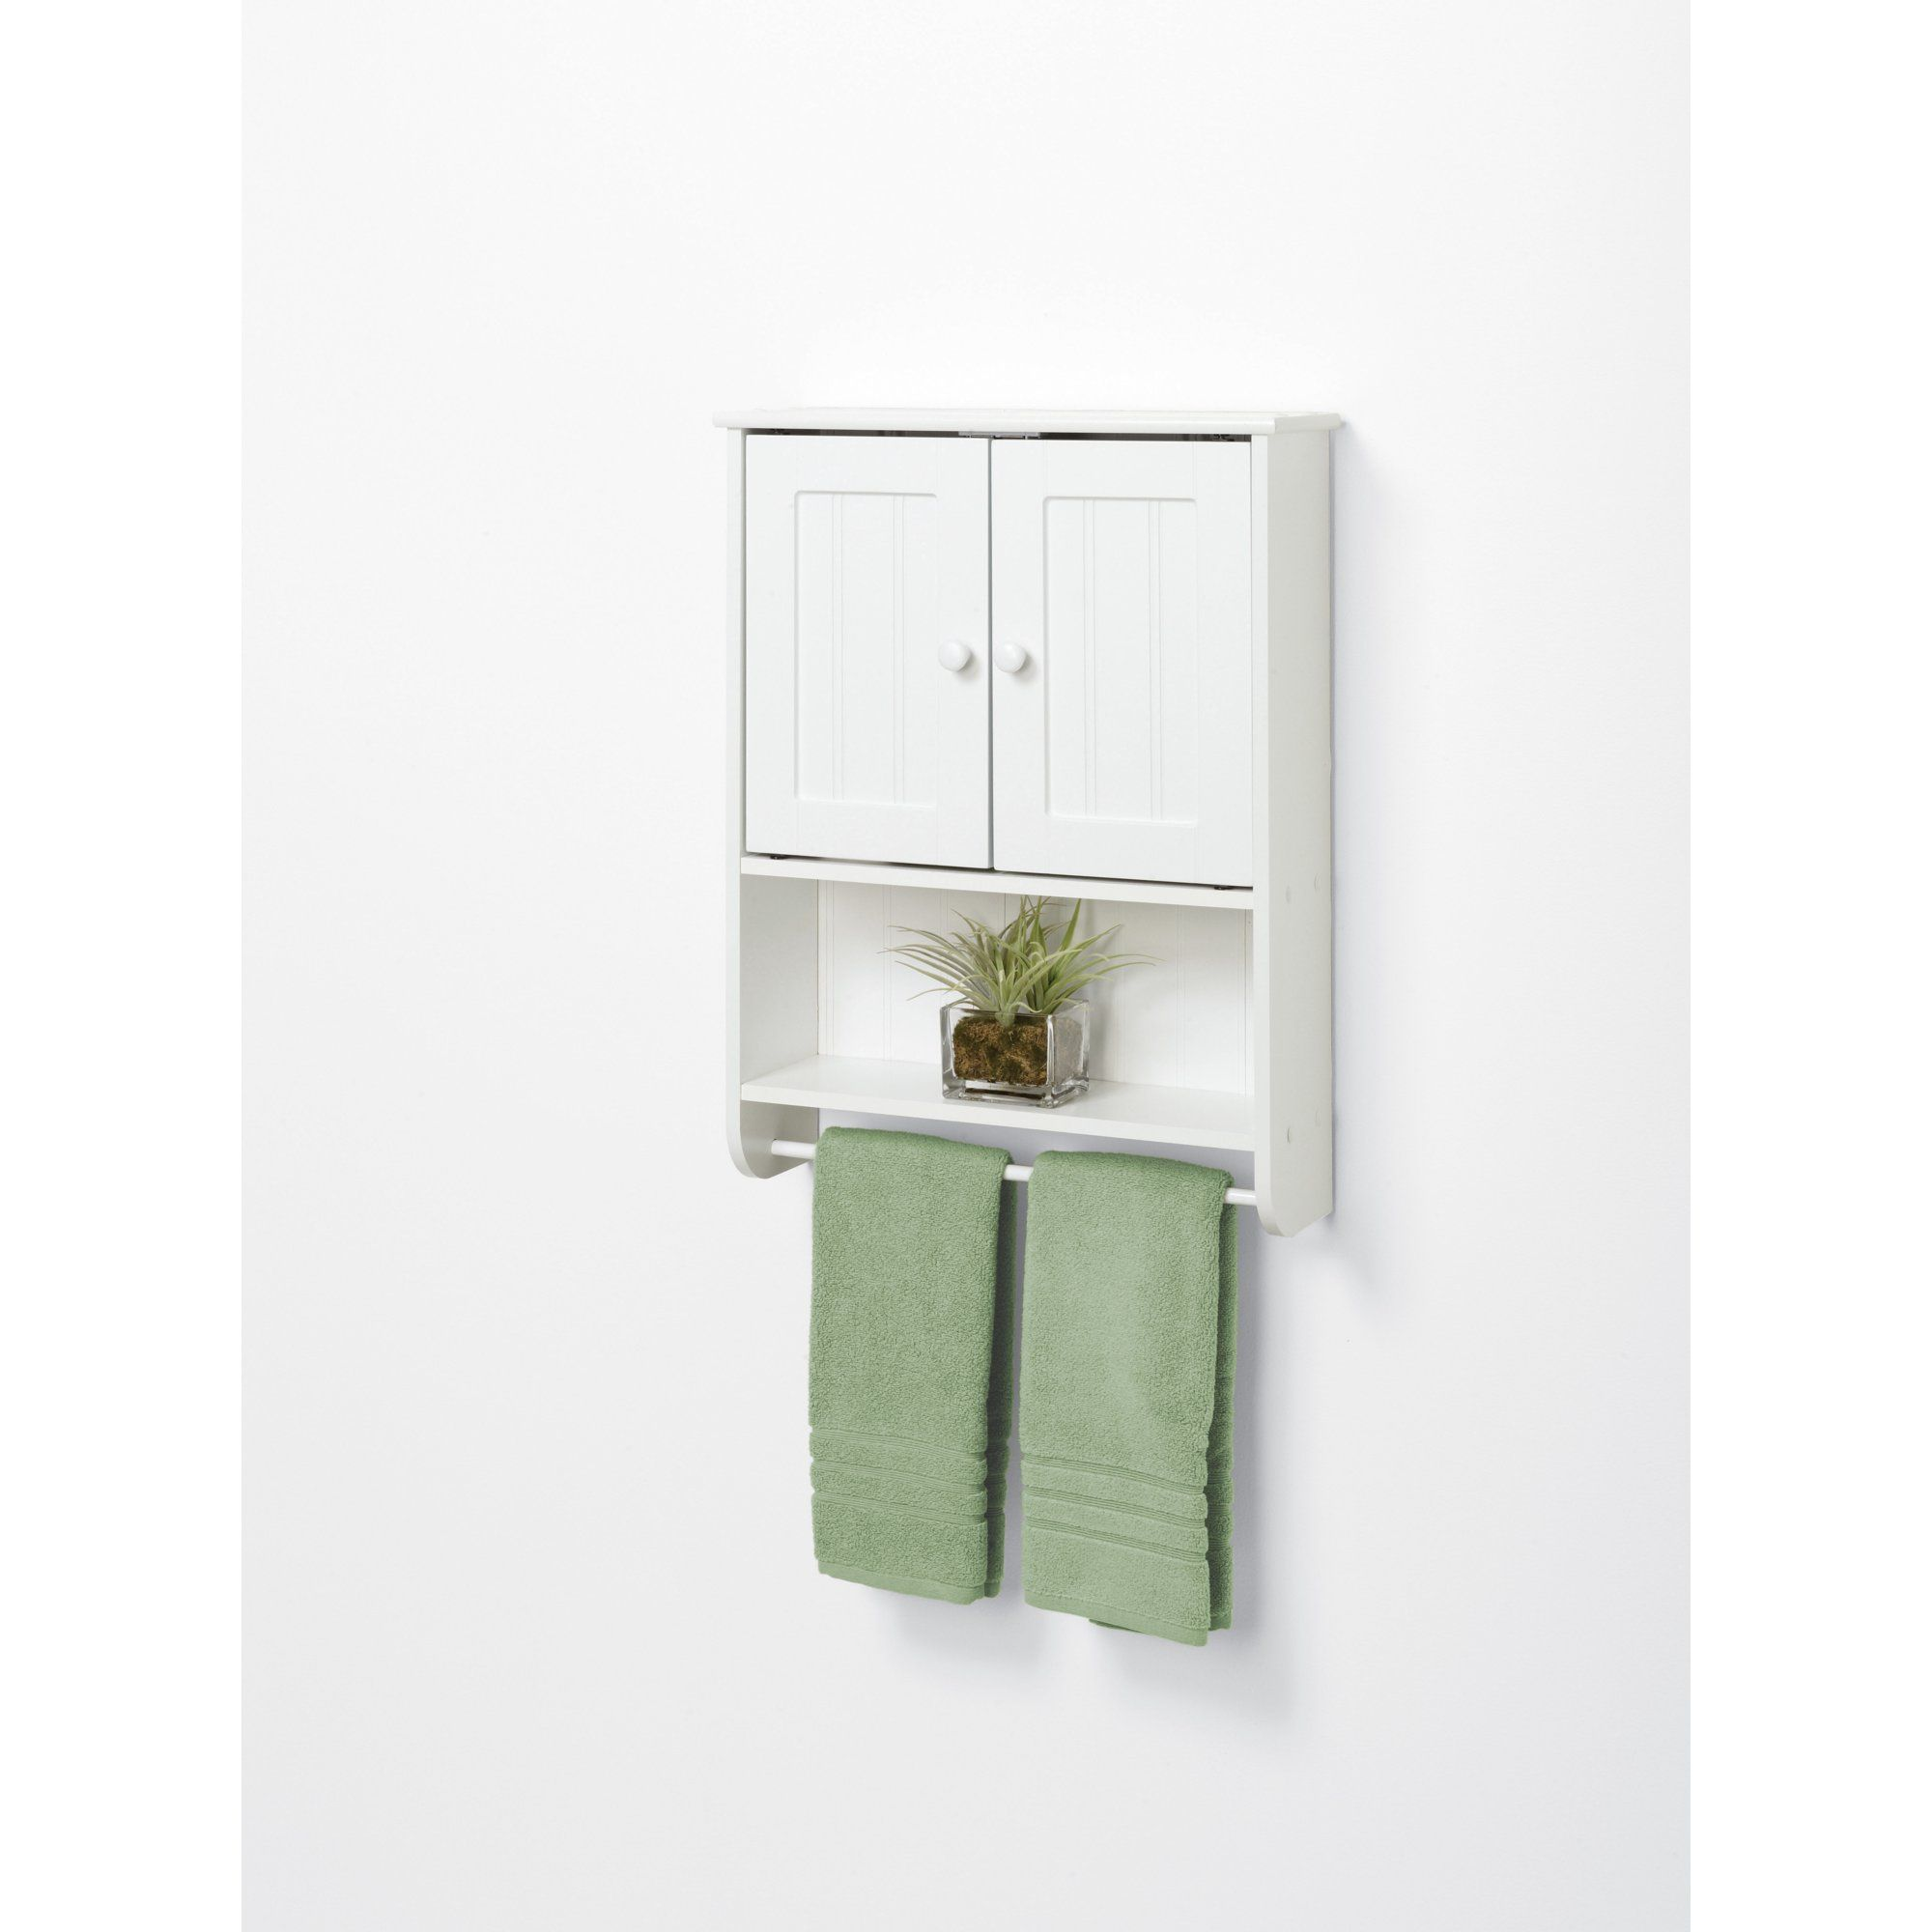 24+ Wall mounted bathroom cabinet for towels best